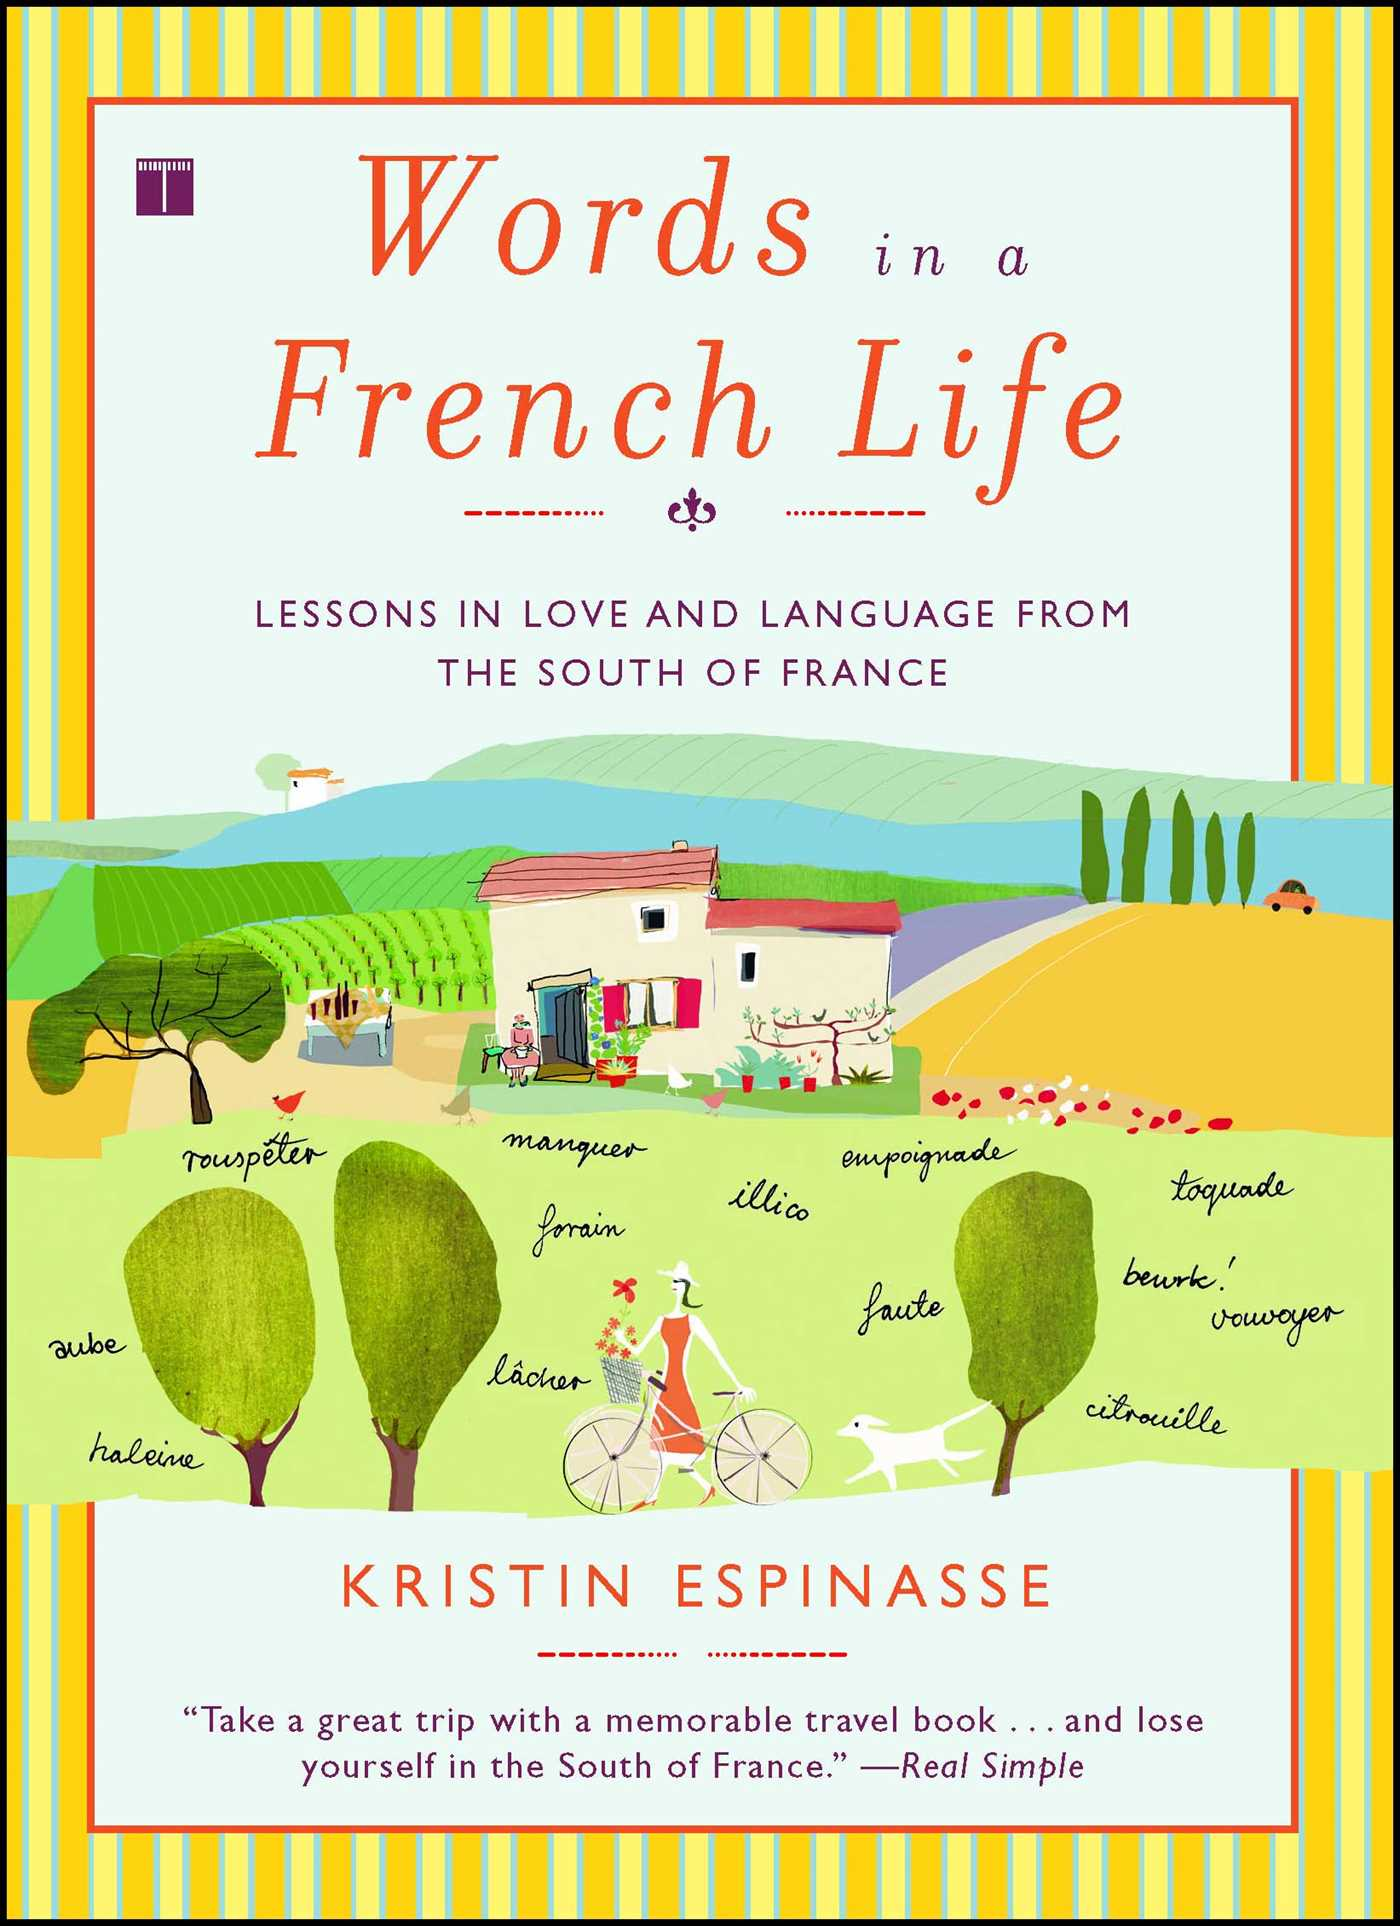 Words-in-a-french-life-9781416531975_hr